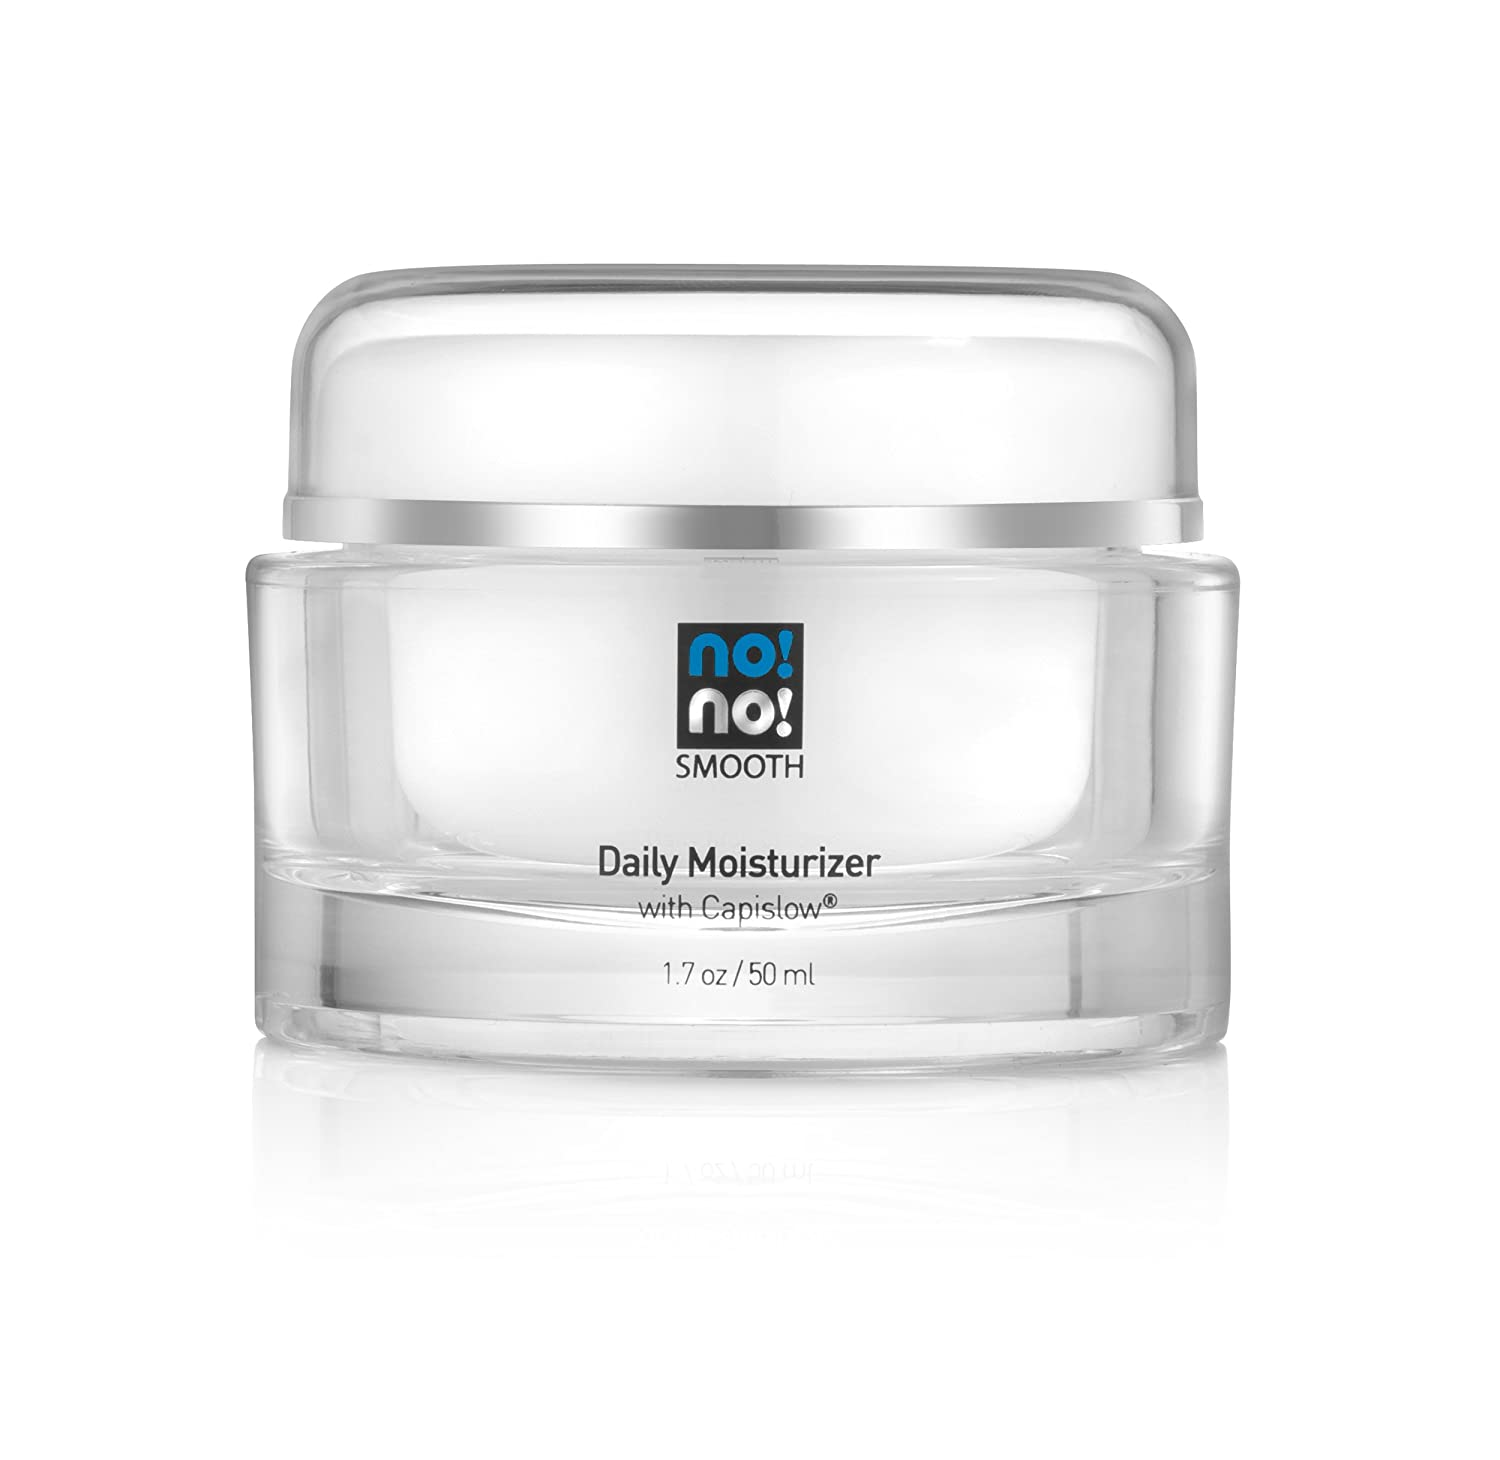 Amazon.com : Radiancy no!no! Smooth Daily Moisturizer, 1.7 Fluid Ounce :  Facial Moisturizers : Beauty